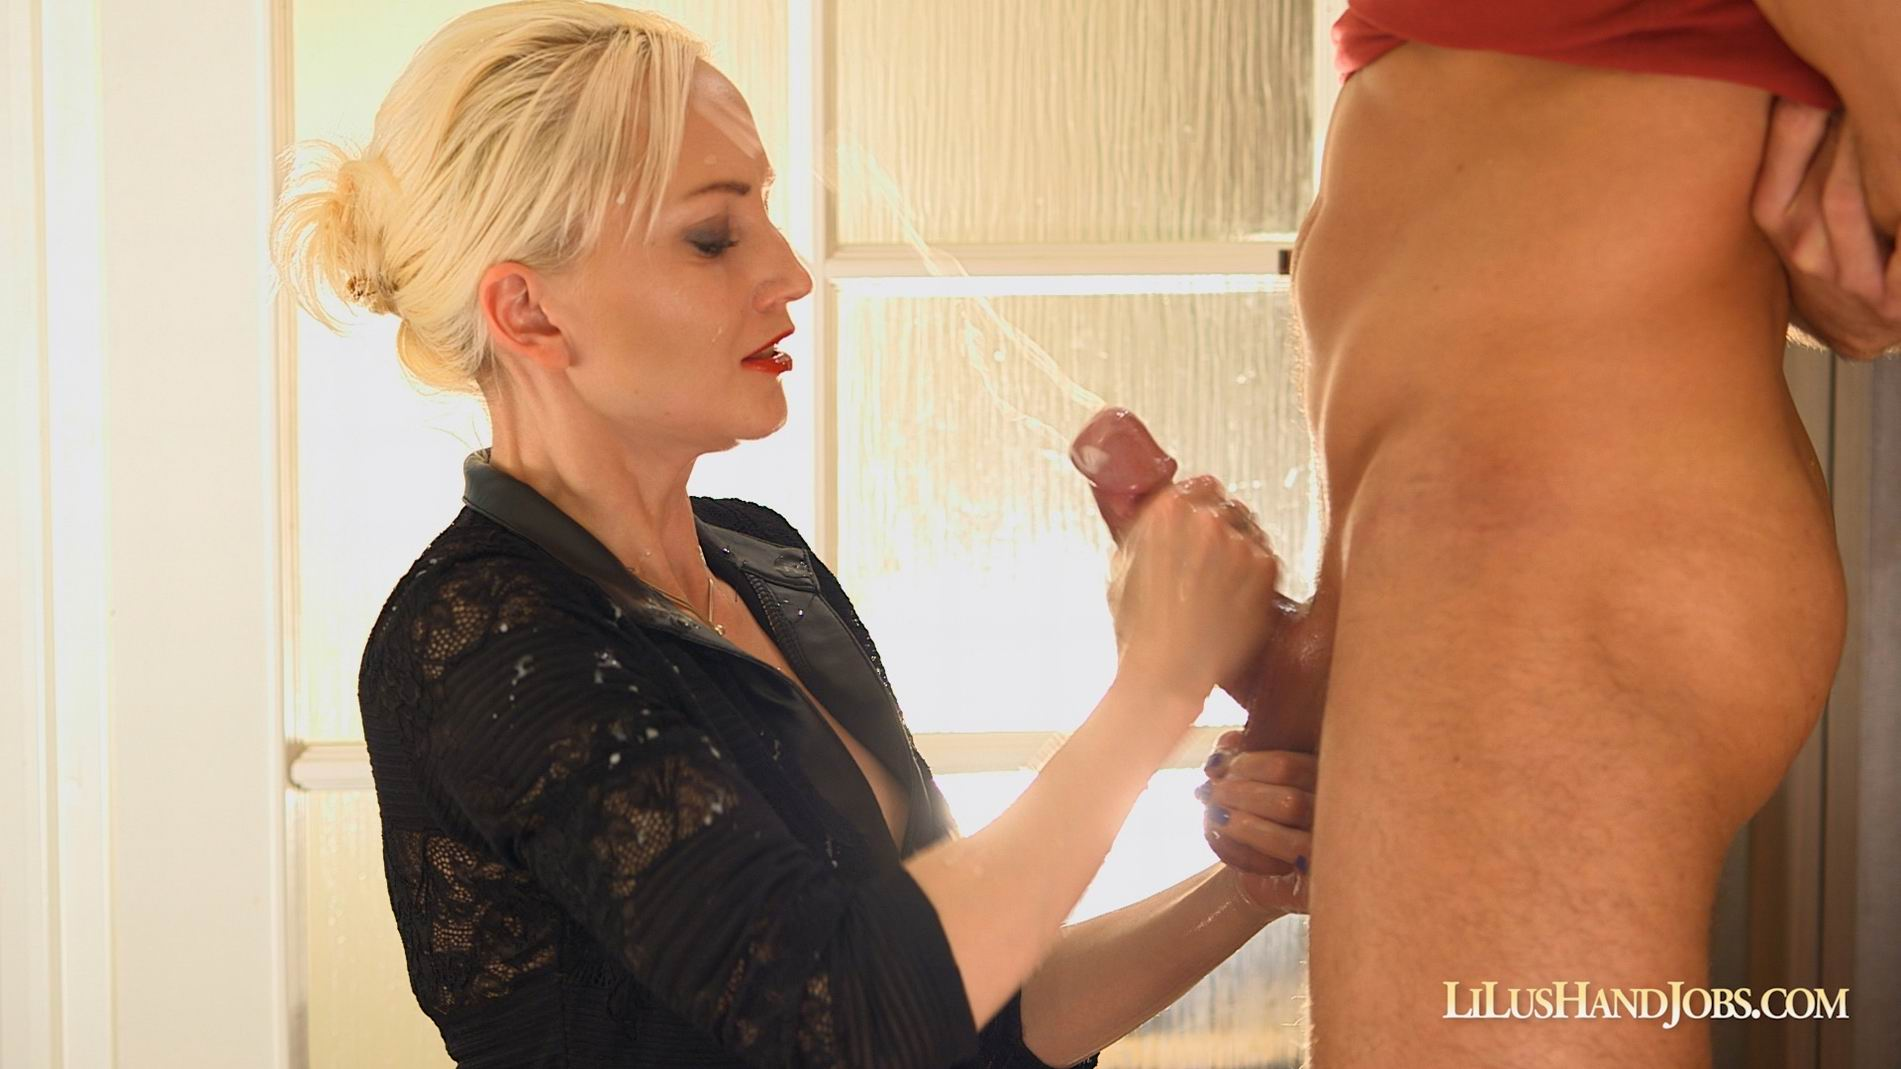 Dildo and Vibrator Playtime HD